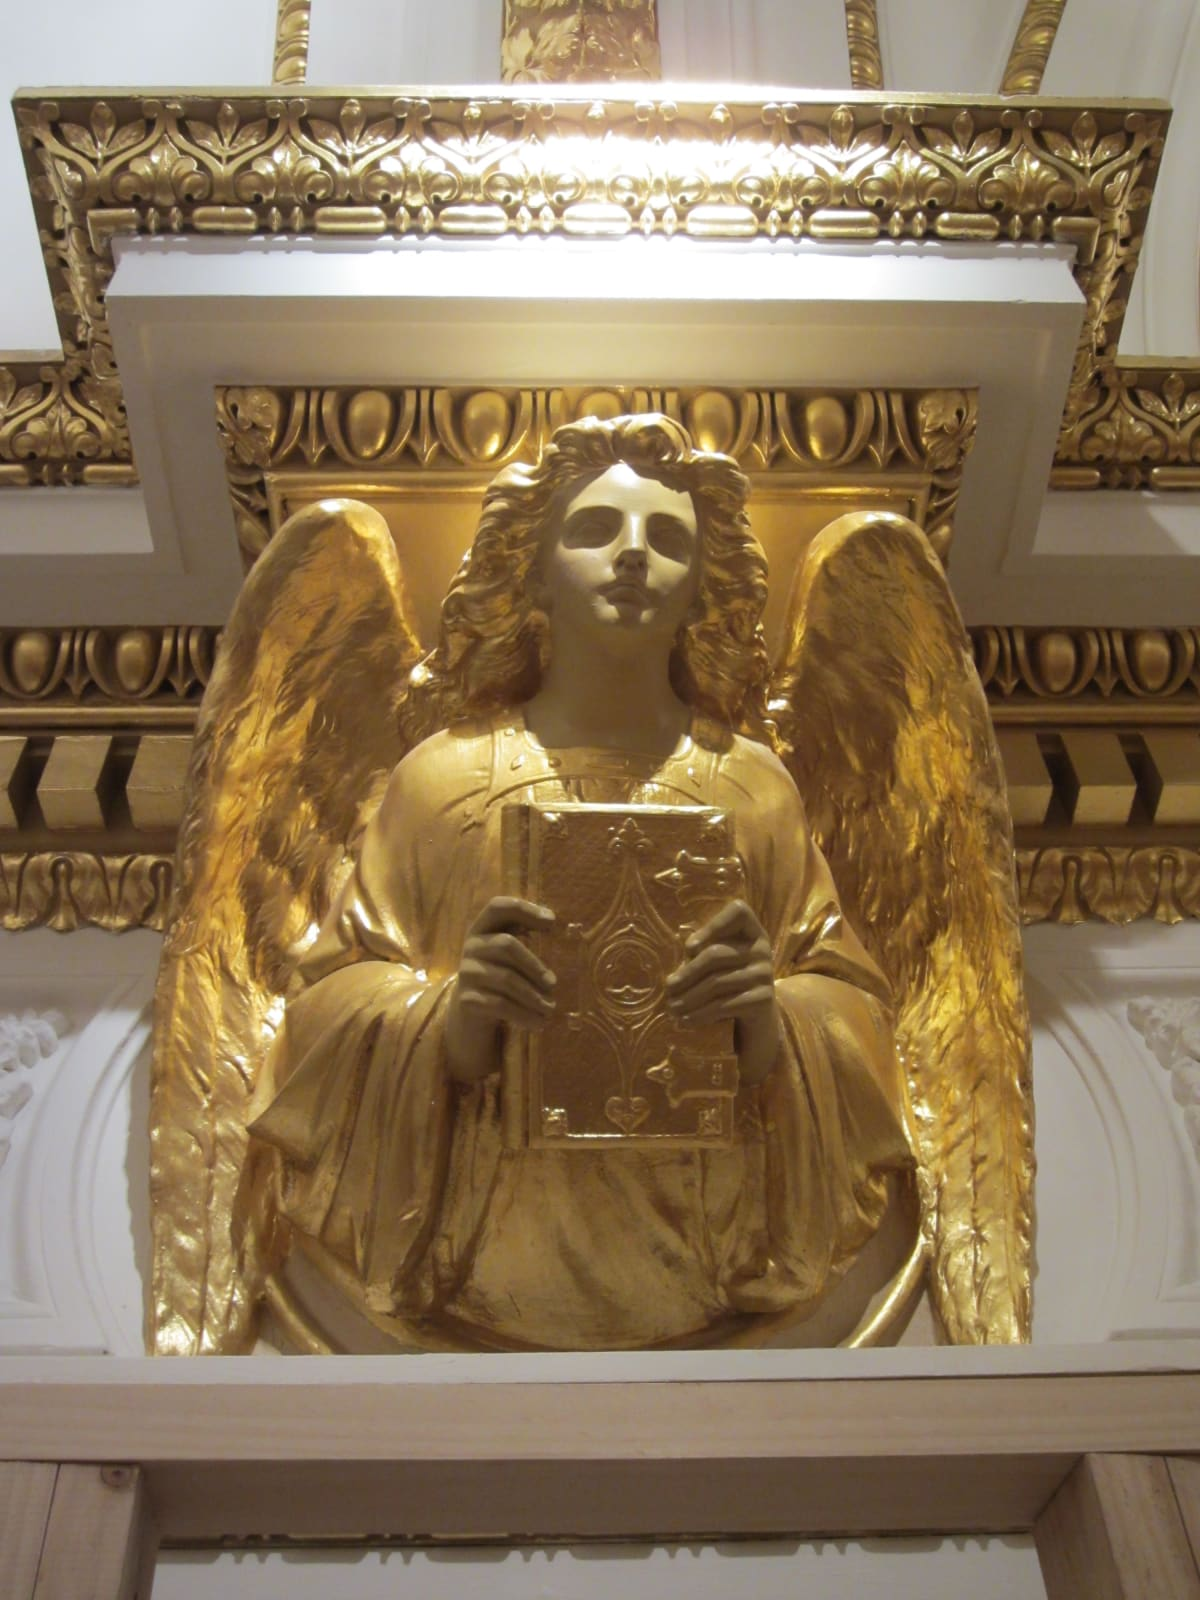 Anne Desmet's Royal Academy Angels